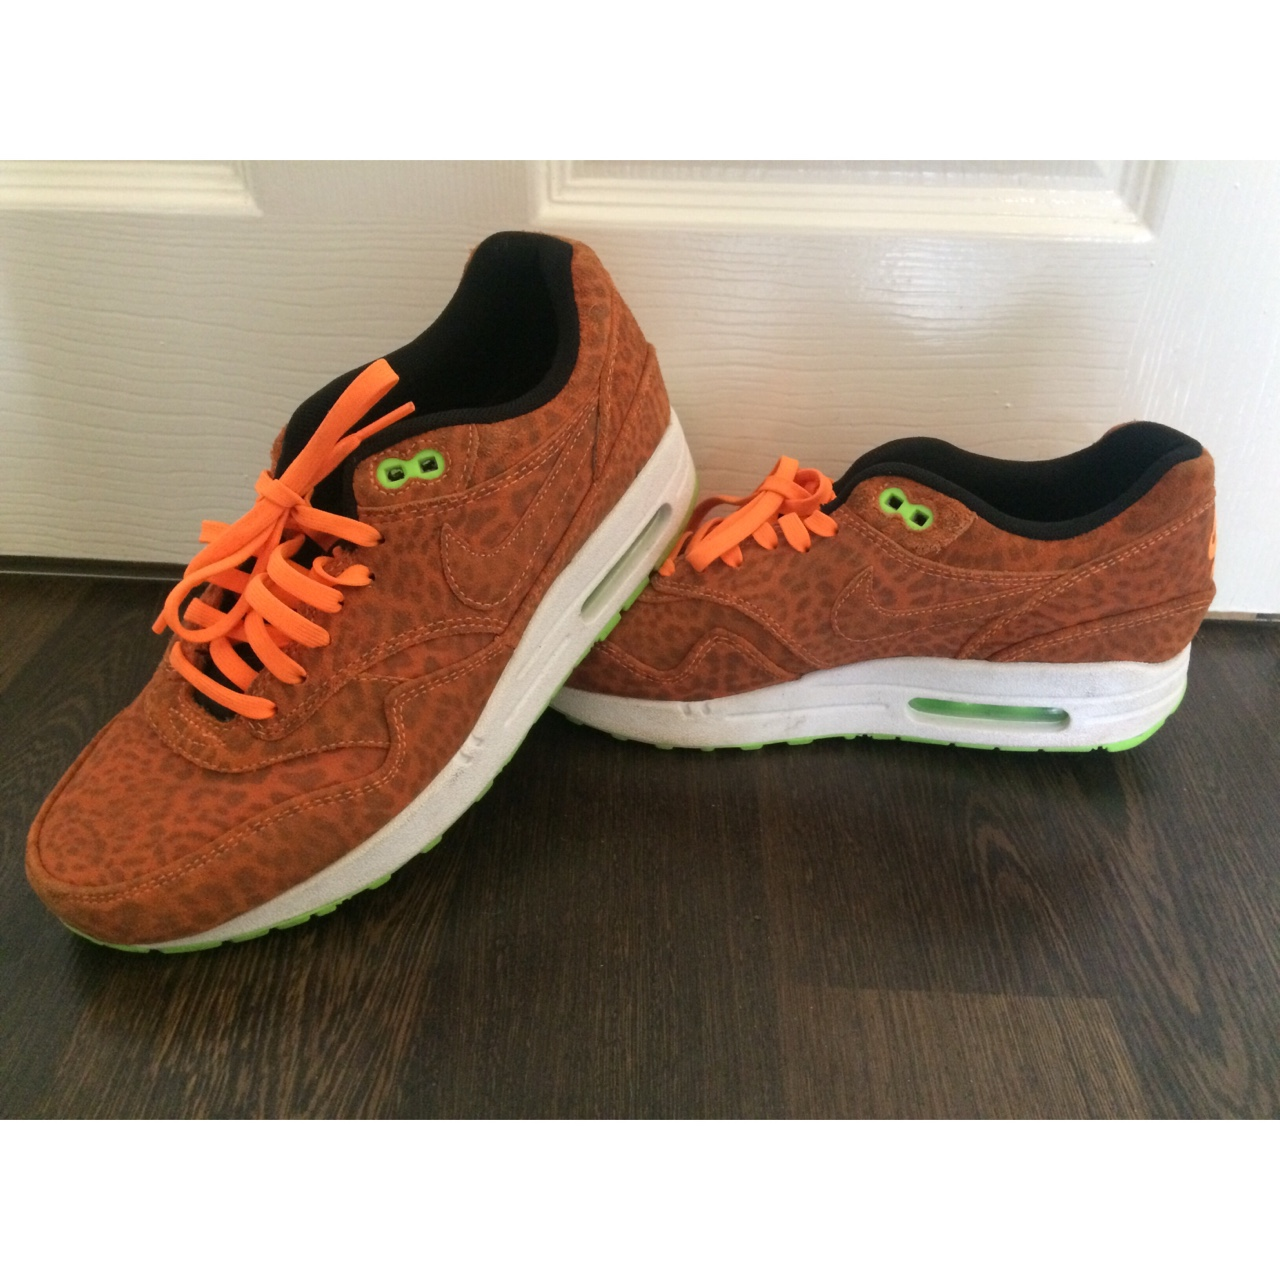 best sneakers 50077 49d91 BLACK FRIDAY SALE Nike air max Limited edition... - Depop